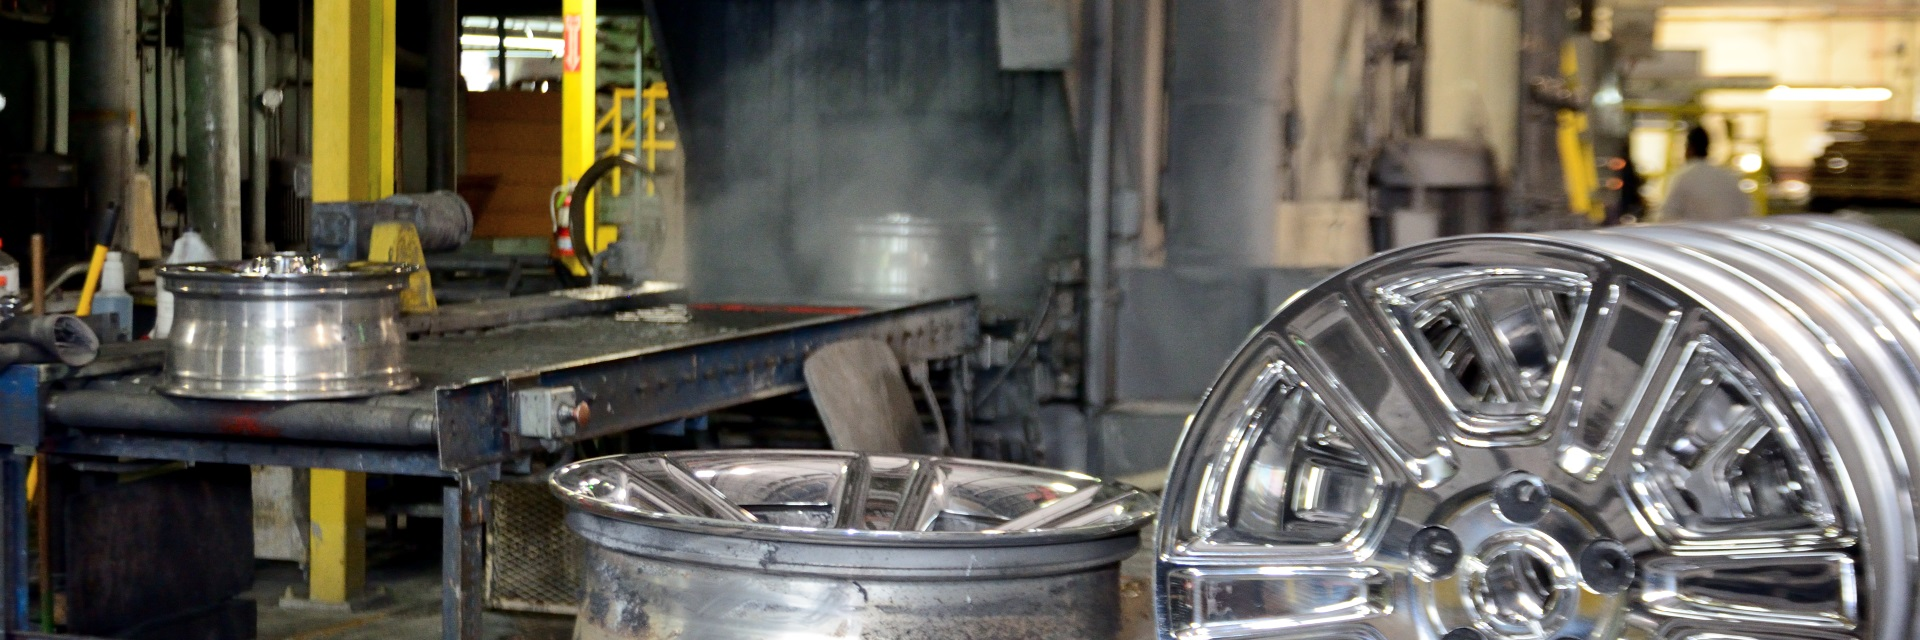 Wheels waiting to run through automatic washing and degreasing machine